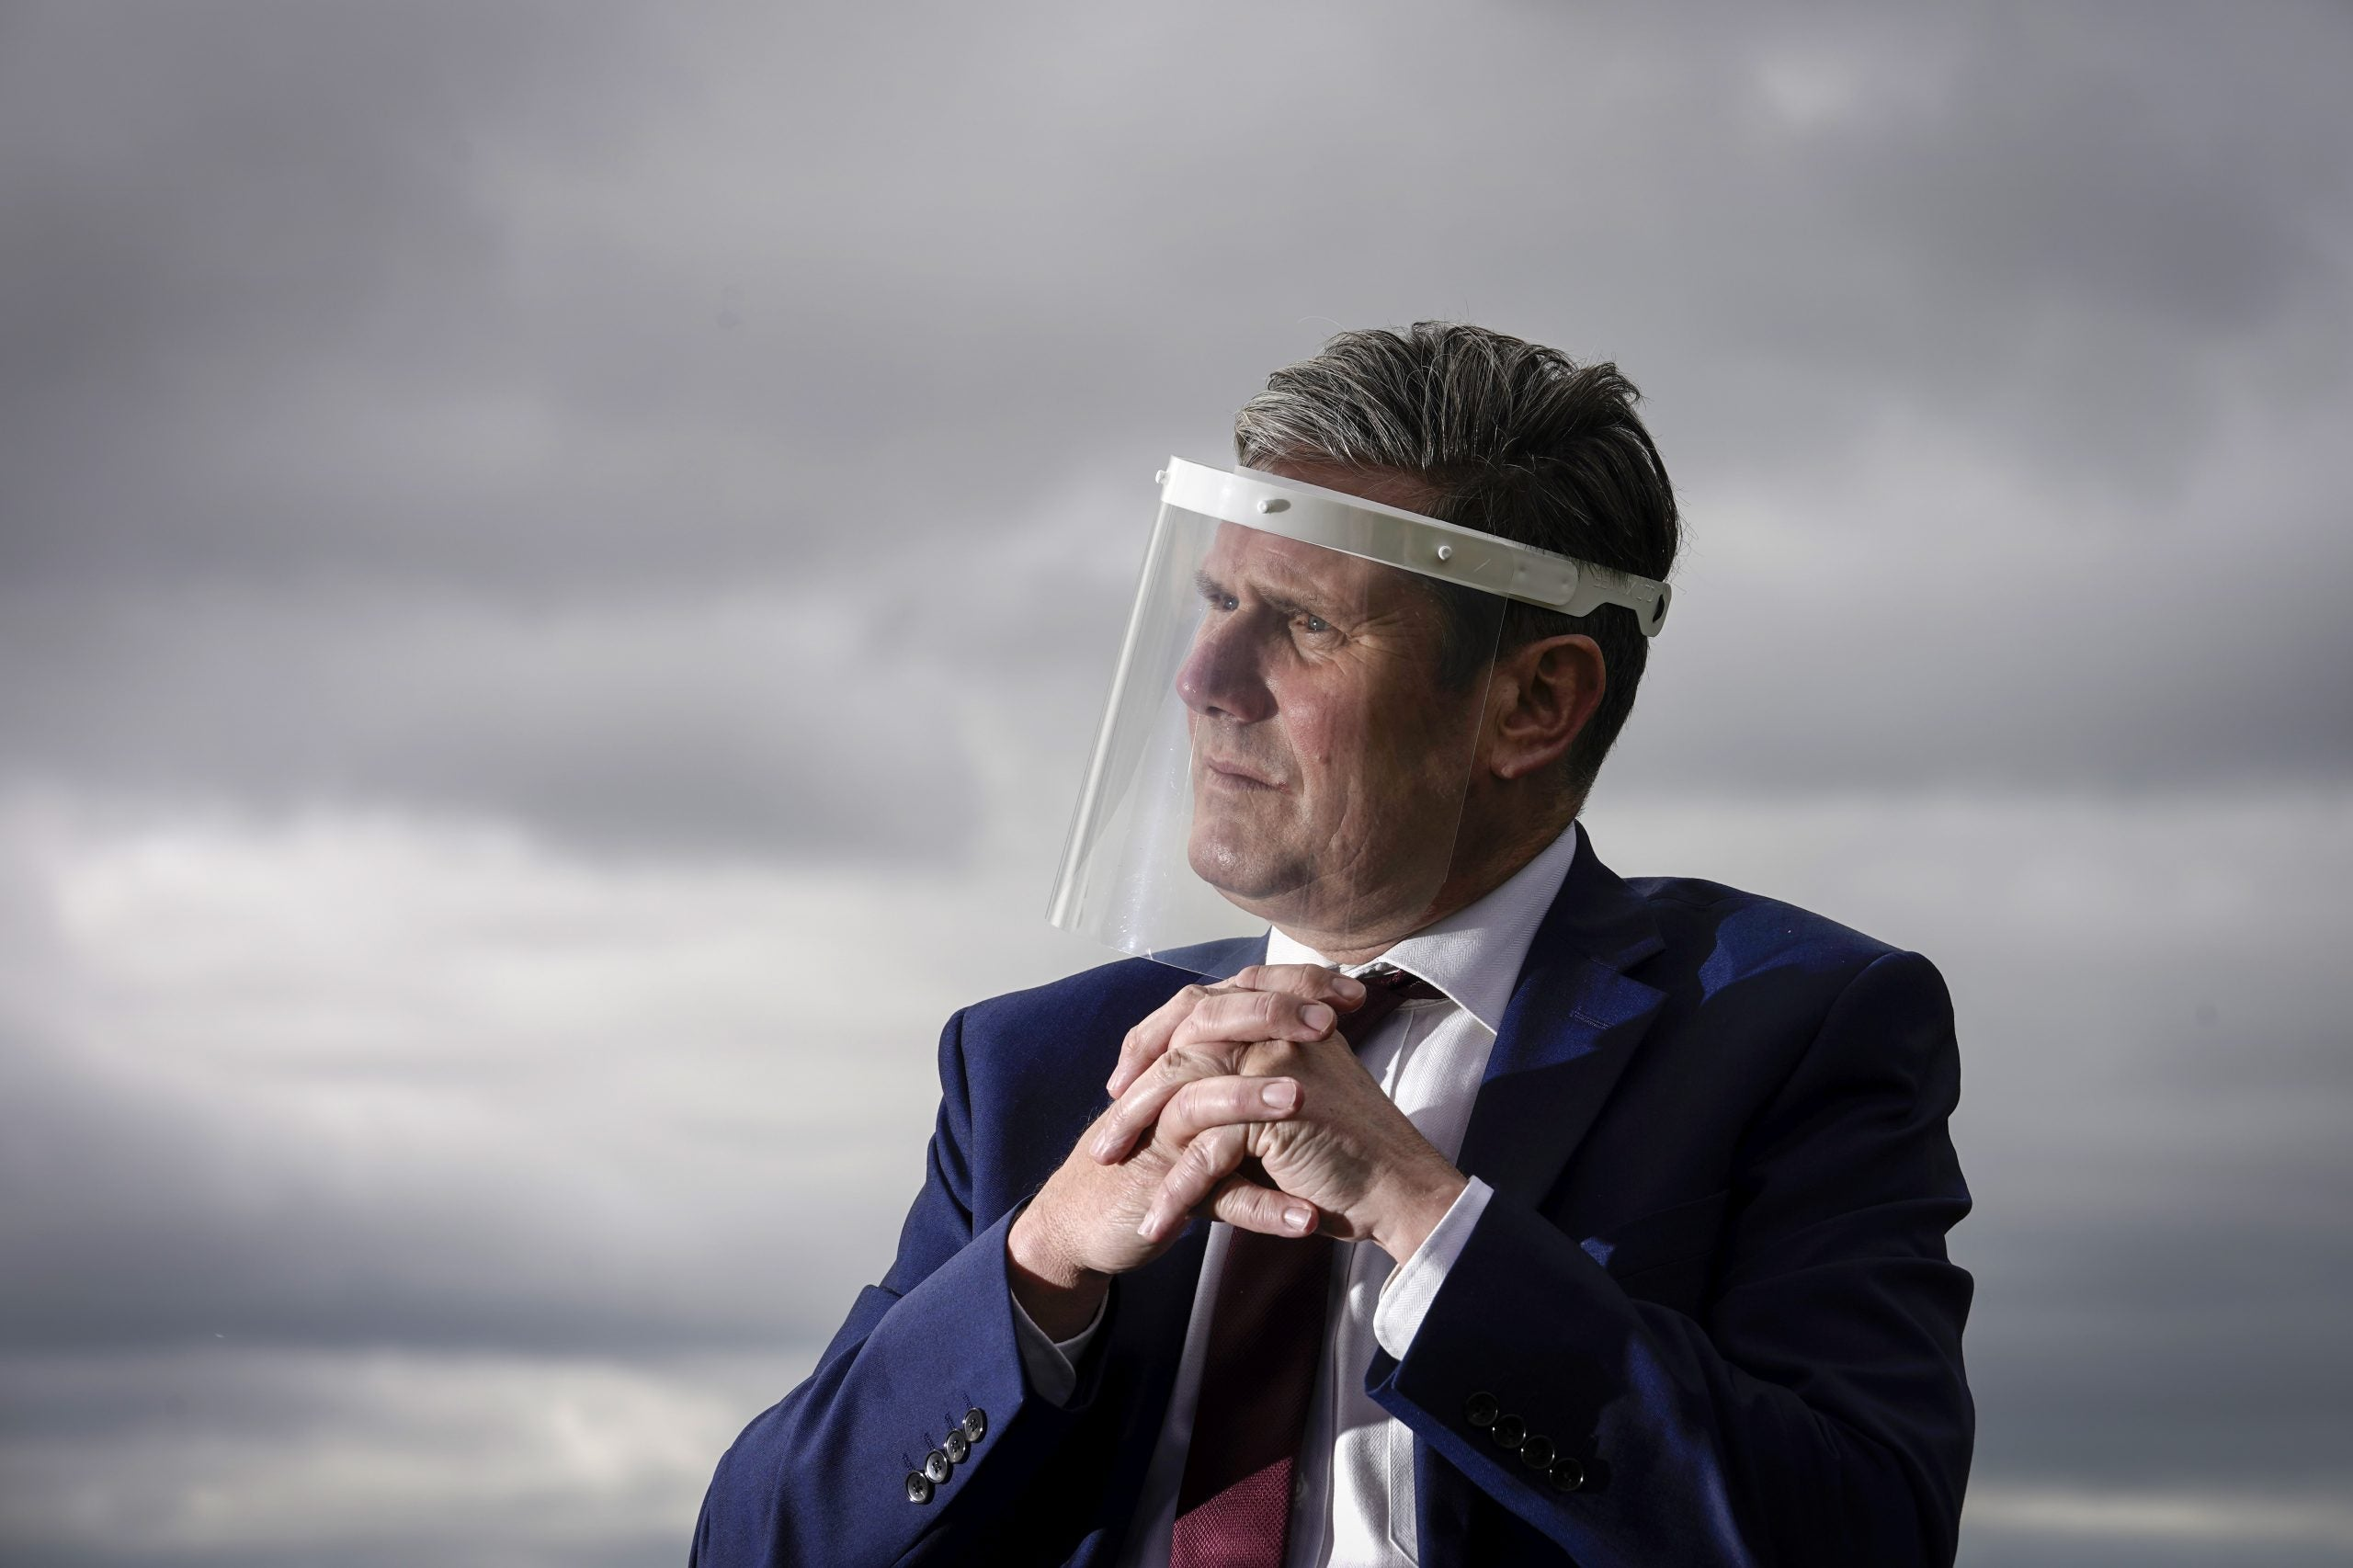 Keir Starmer's tactful silence on the culture wars won't lead Labour to victory